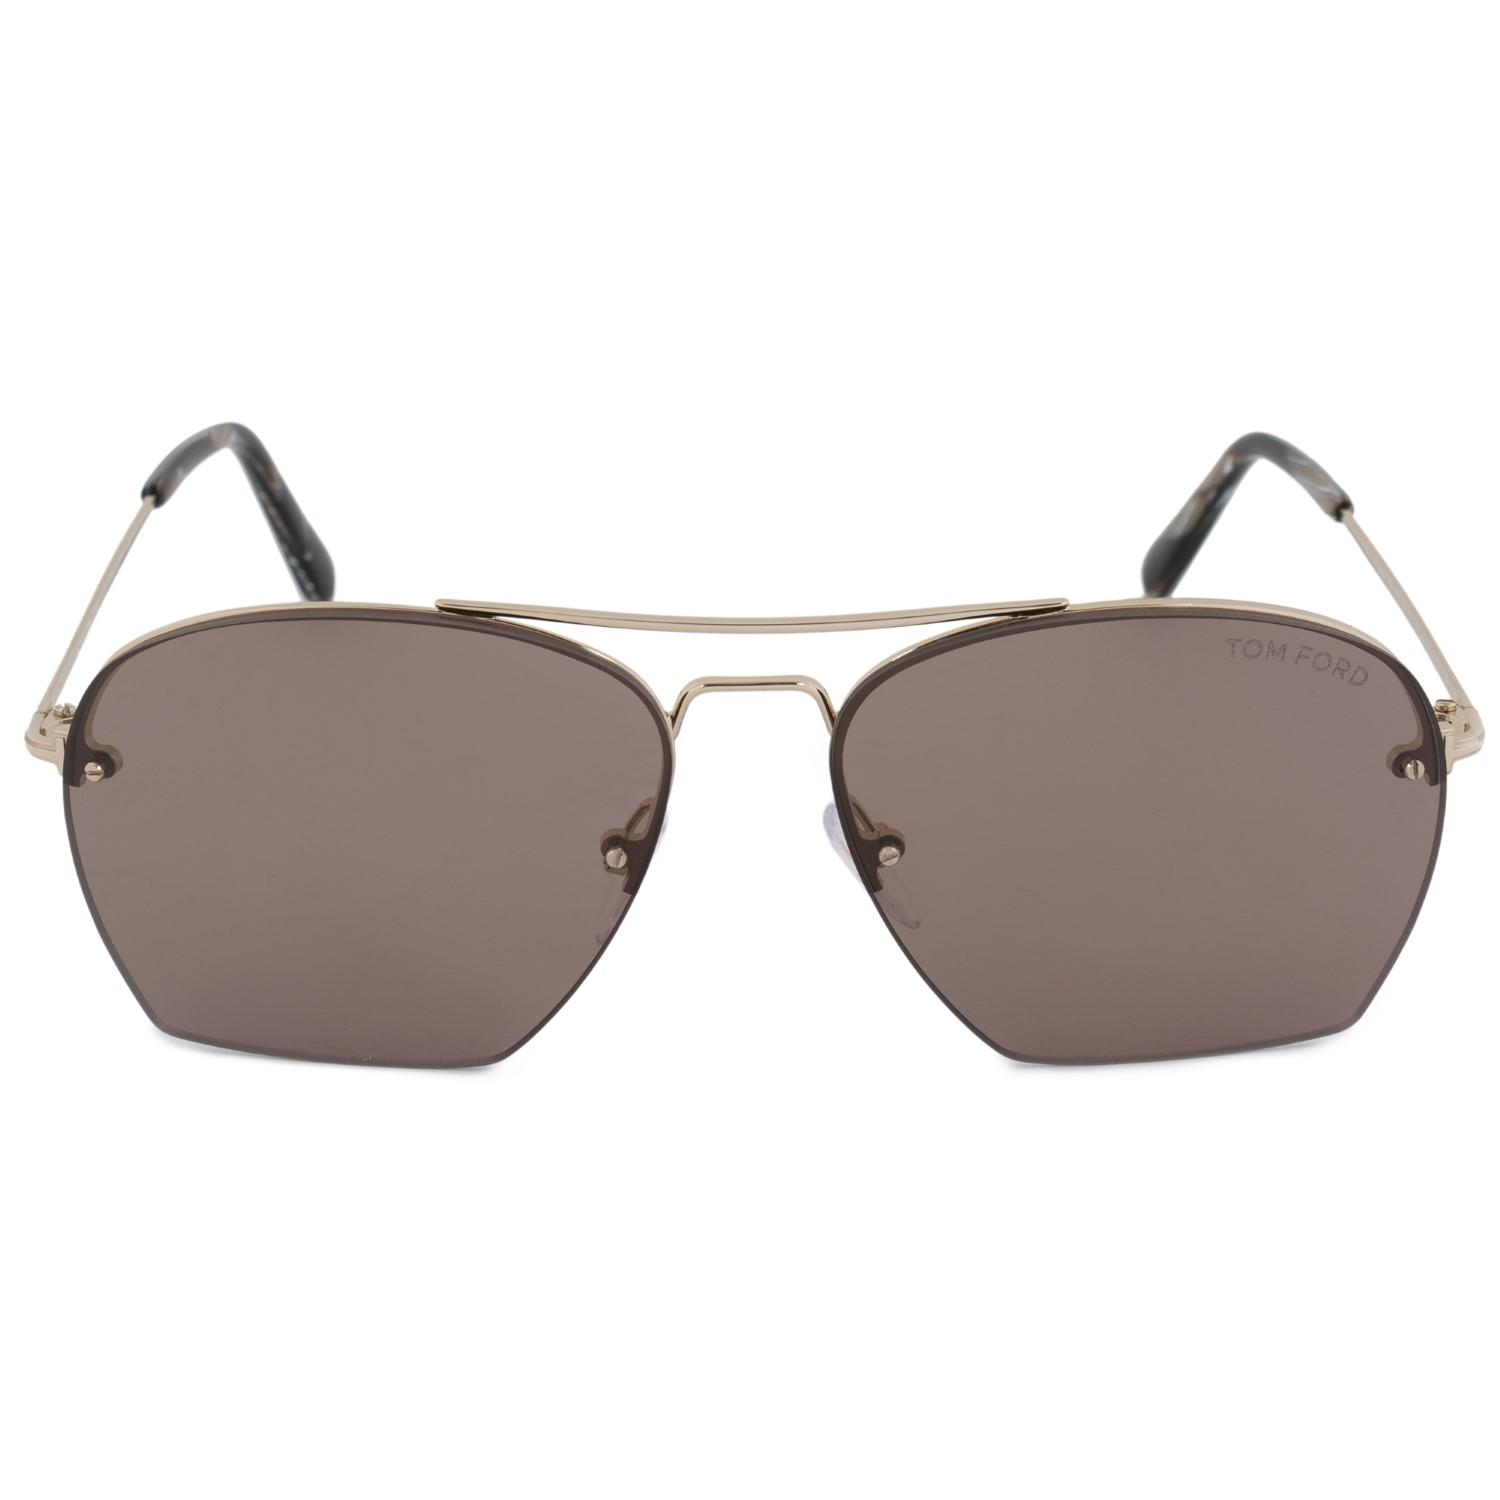 25040b0ed9 Lyst - Tom Ford Whelan Square Sunglasses Ft0505 28e 58